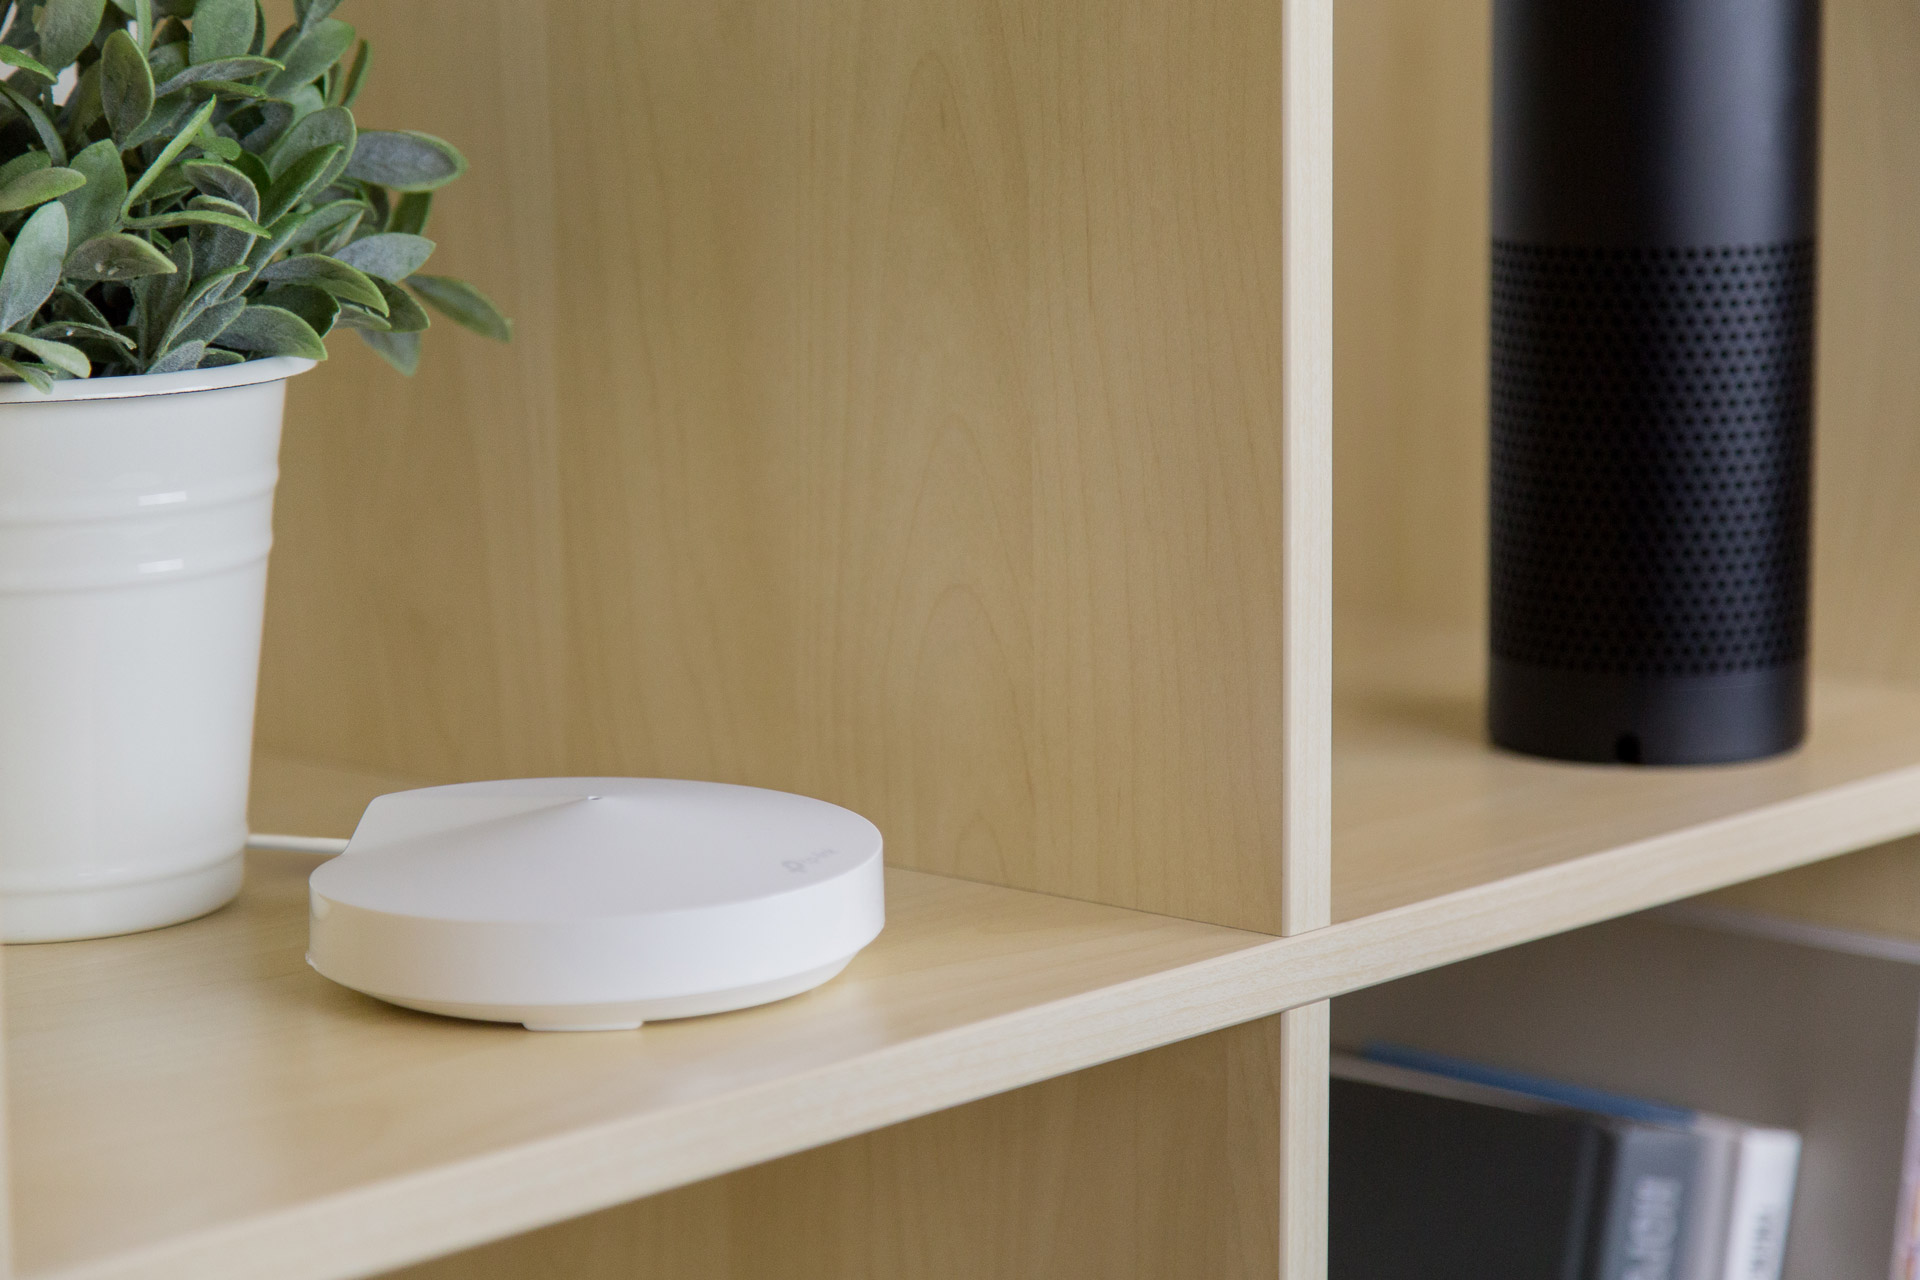 The TP-Link Deco M5 Mesh Router placed on a shelf